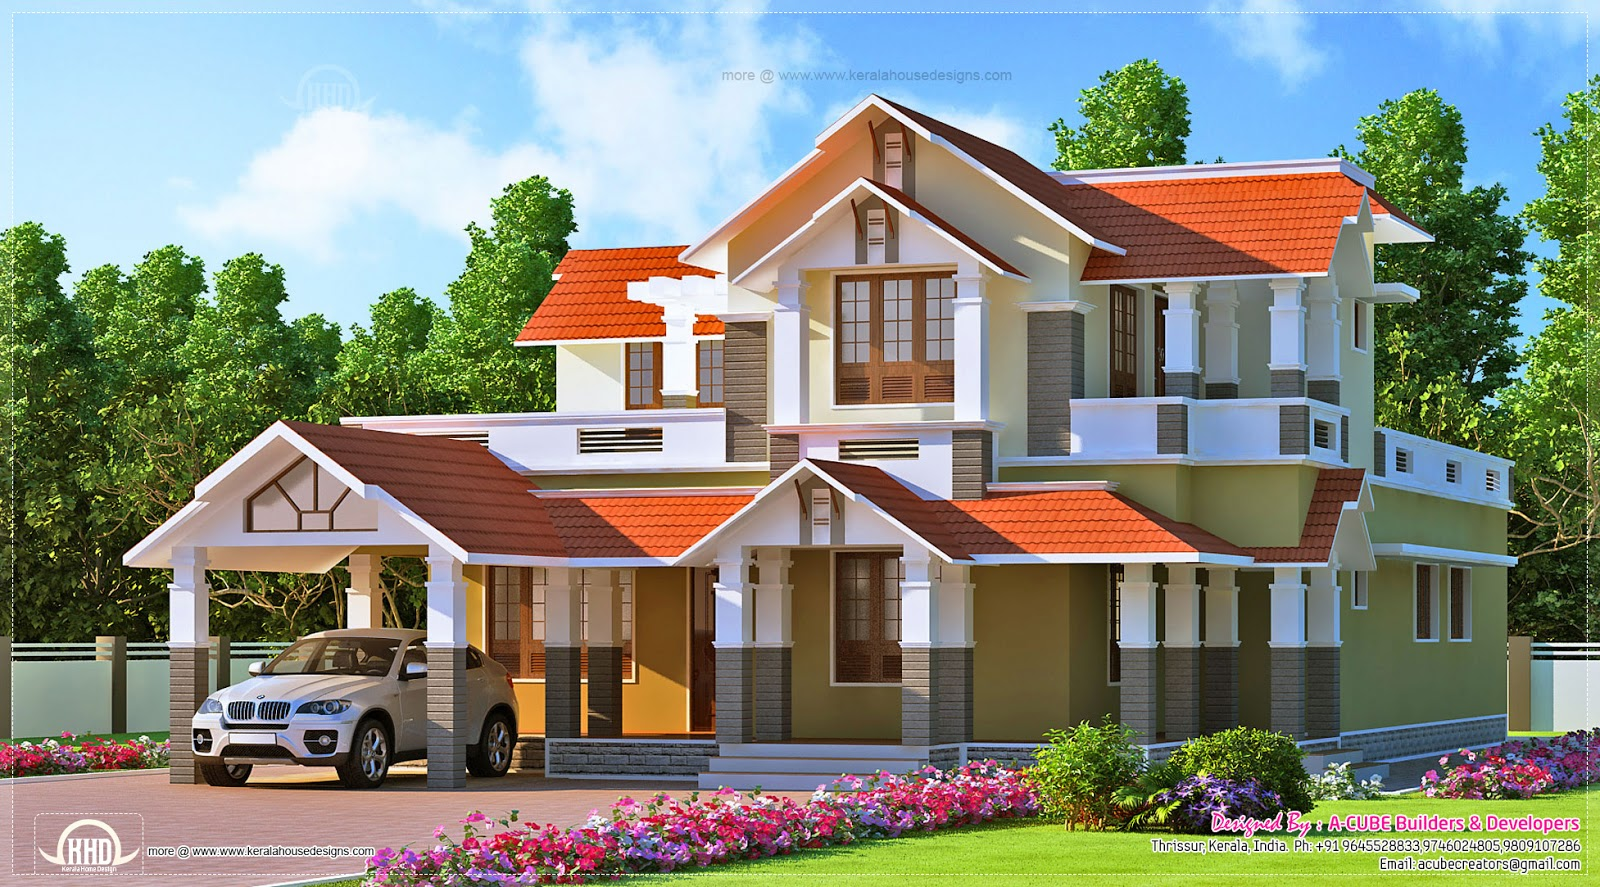 Kerala style dream home design in 2900 kerala Build my dream house